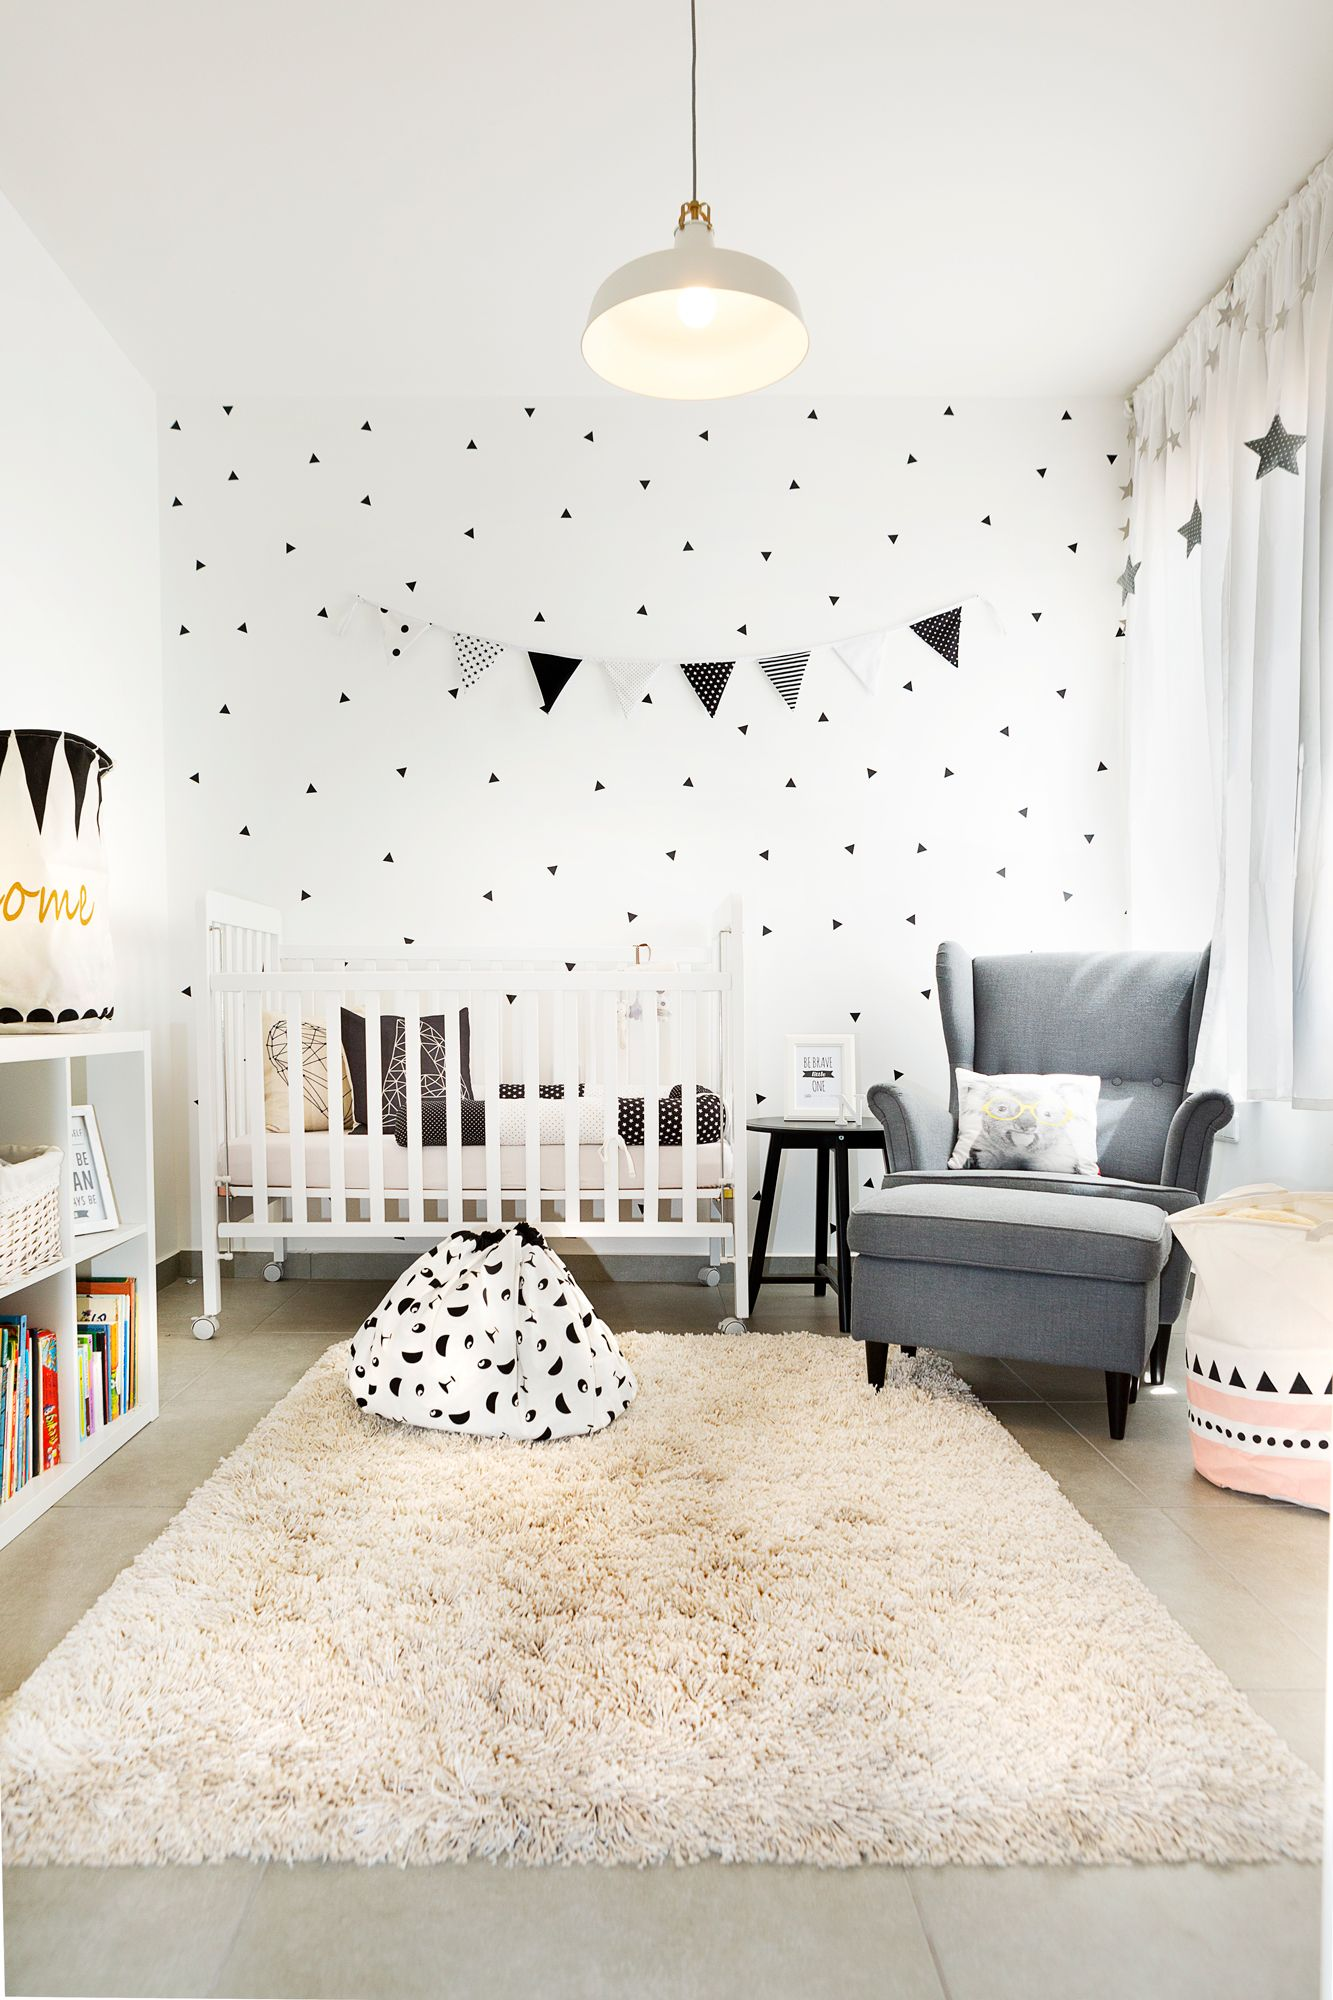 Baby Boy Room Design Pictures: Black And White Geometric Design Baby Room Ikea Style By